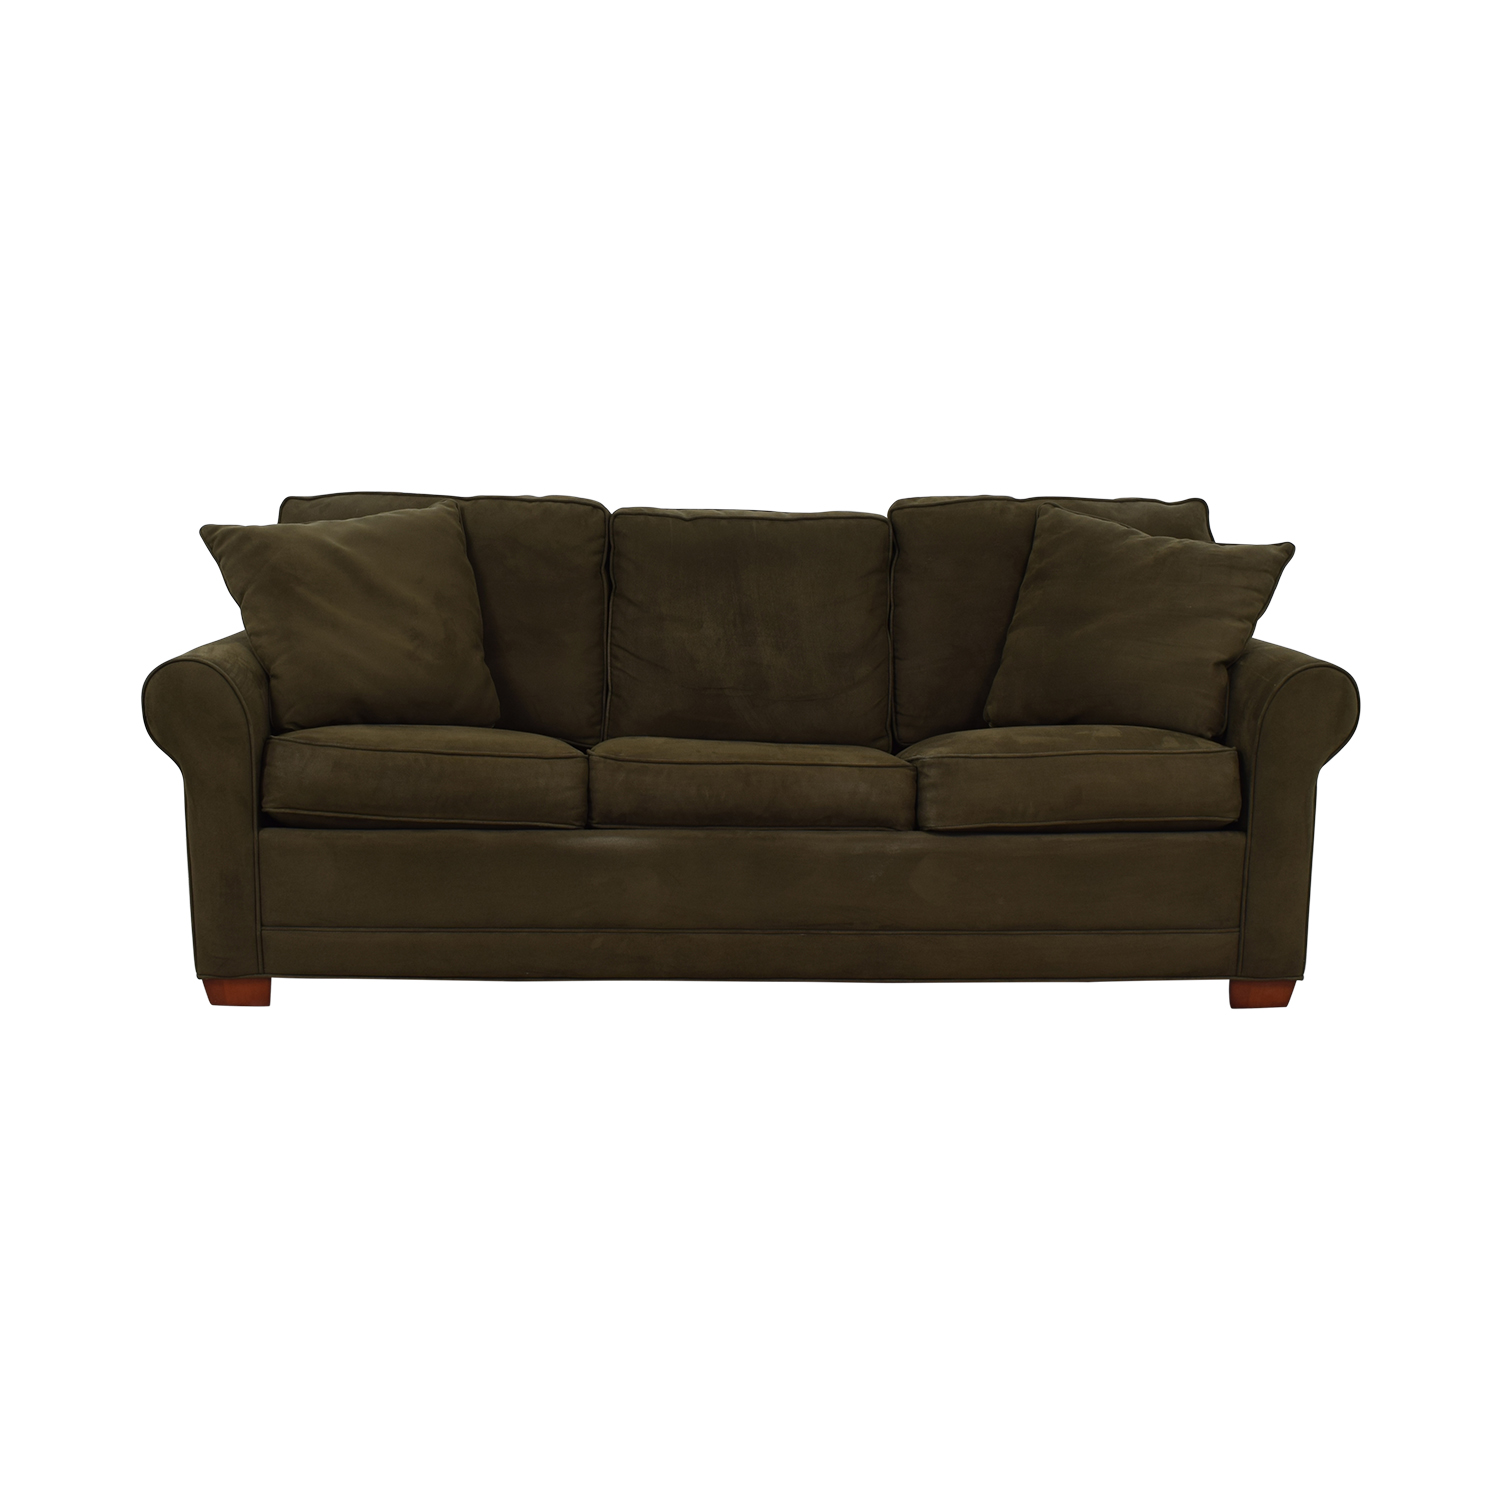 shop Raymour & Flanigan Brown Microfiber Convertible Three-Cushion Sofa Raymour & Flanigan Sofa Beds